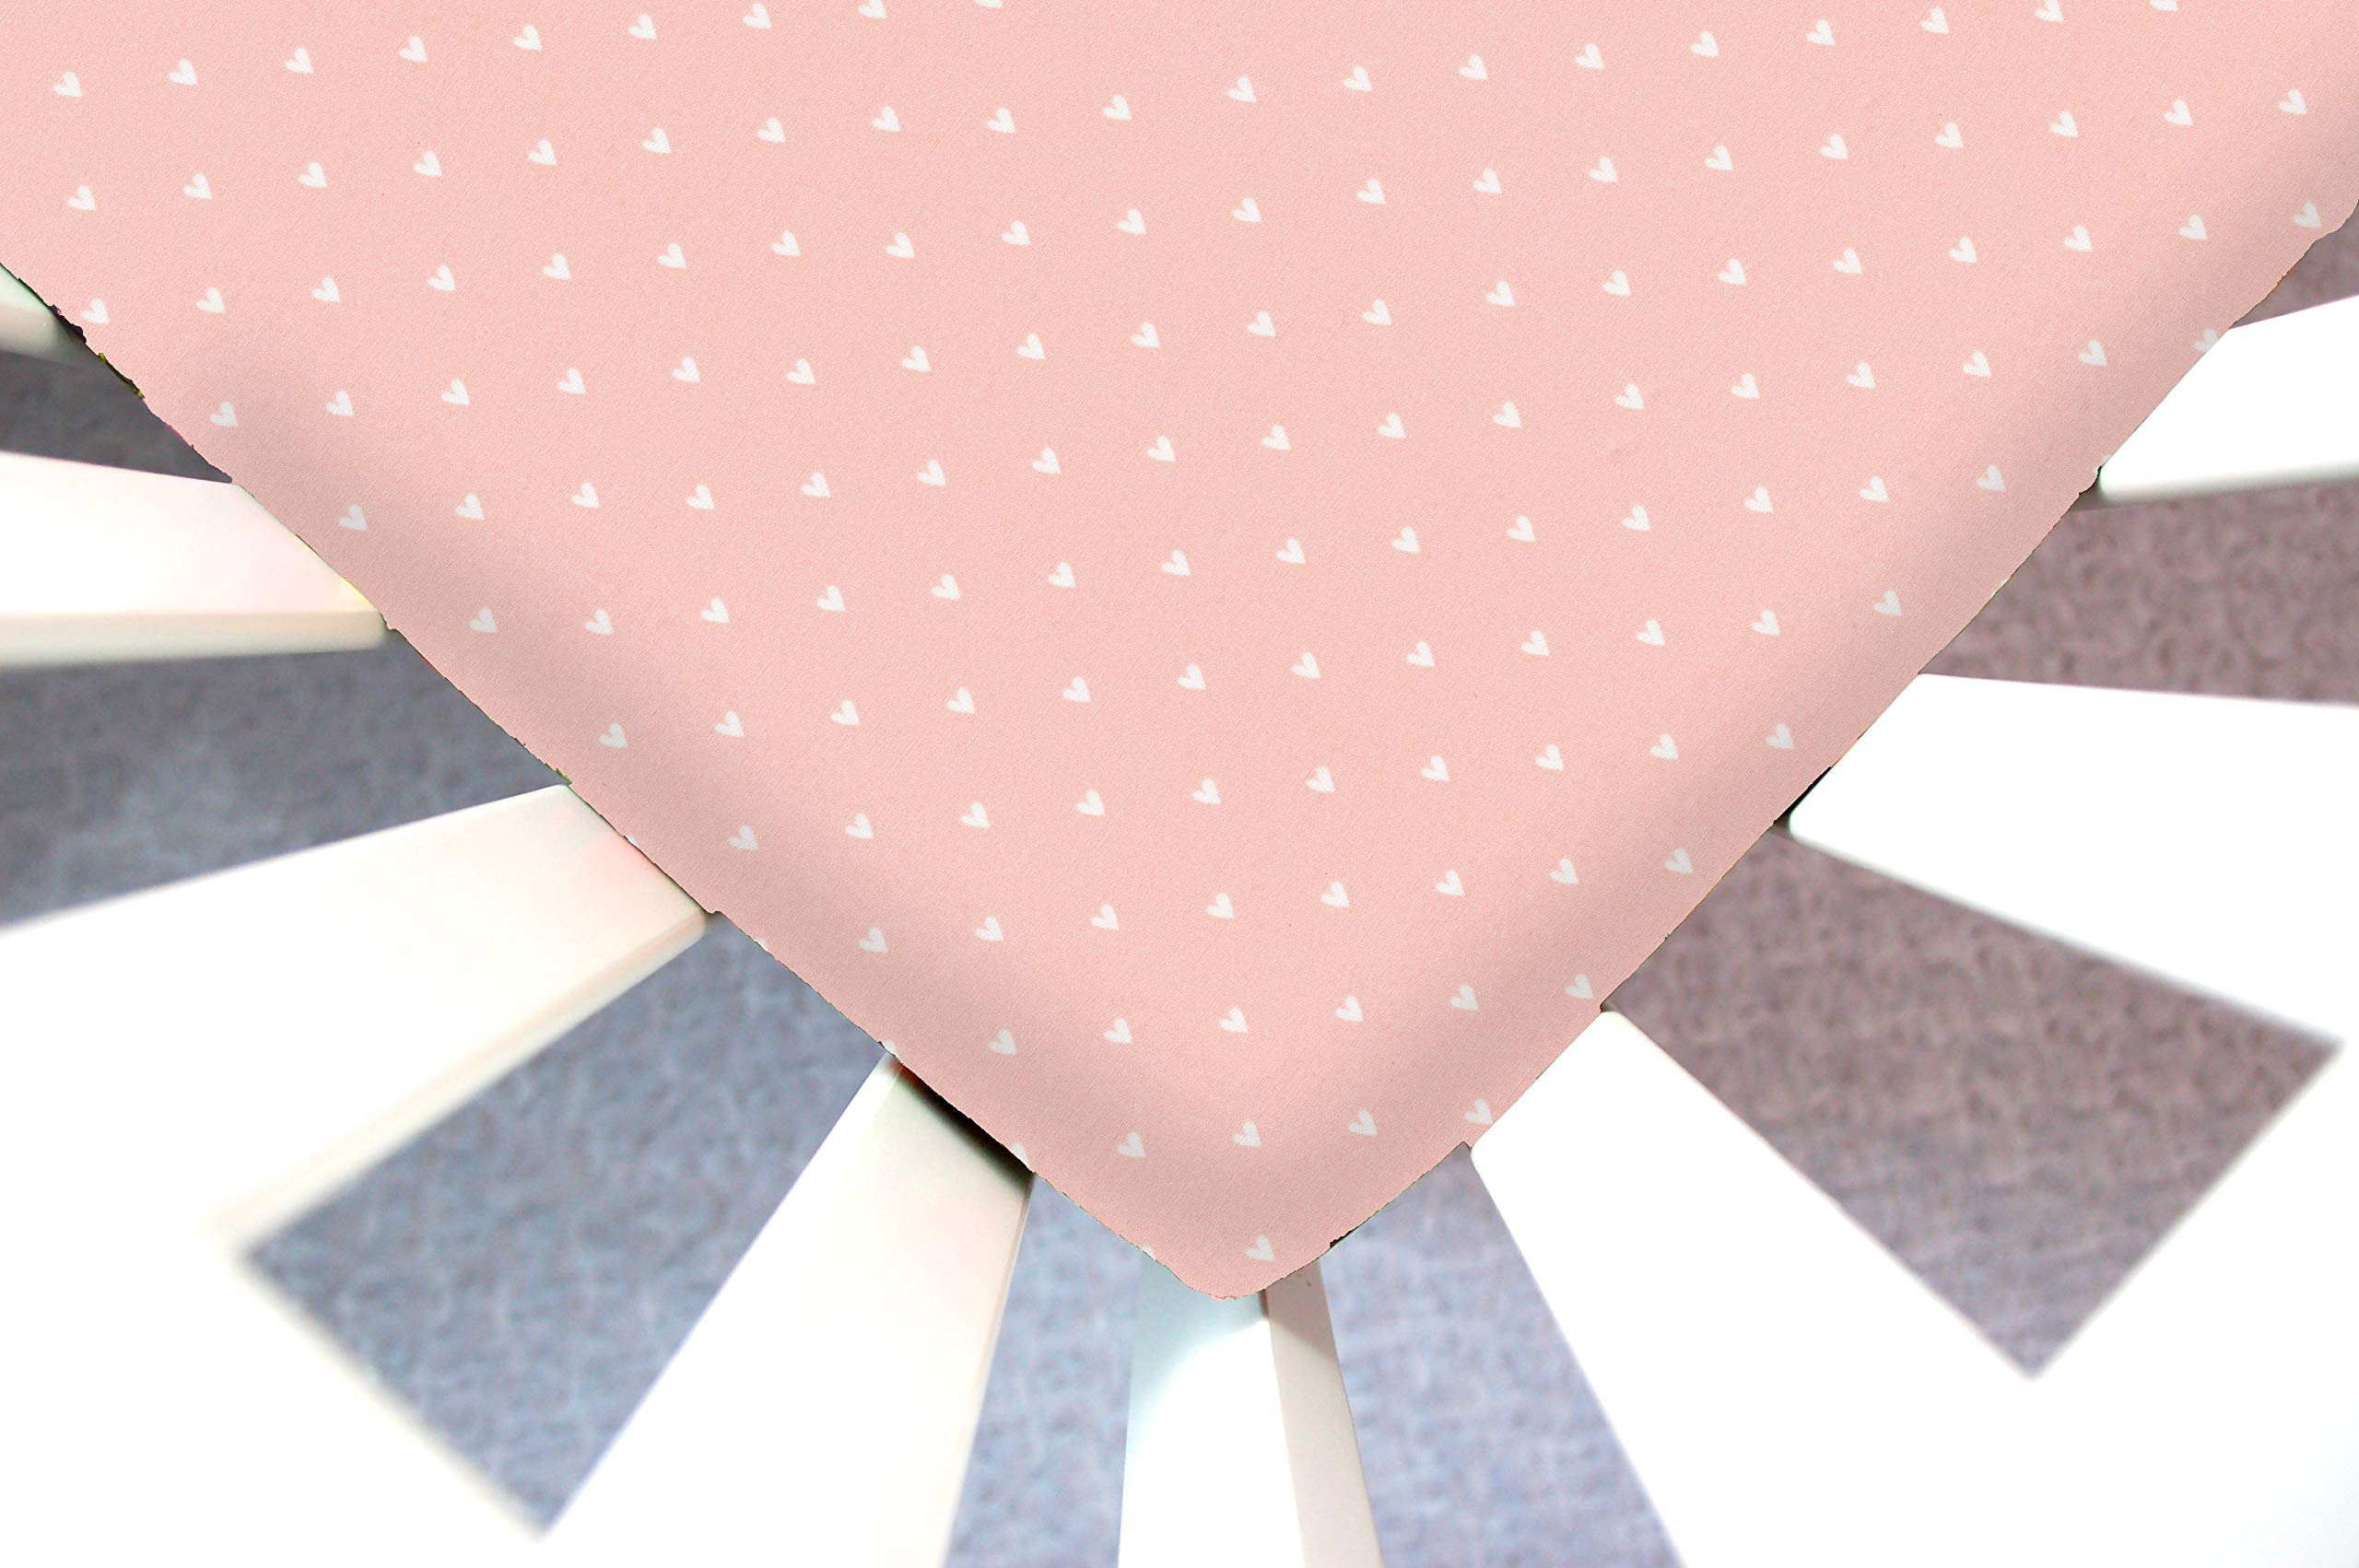 Little Moose by Liza Handmade Sheet Made to Fit Nuna Sena Play Yard in Organic Pink Hearts This Sheet was Not Created or Sold by Nuna Sena by Little Moose By Liza LLC